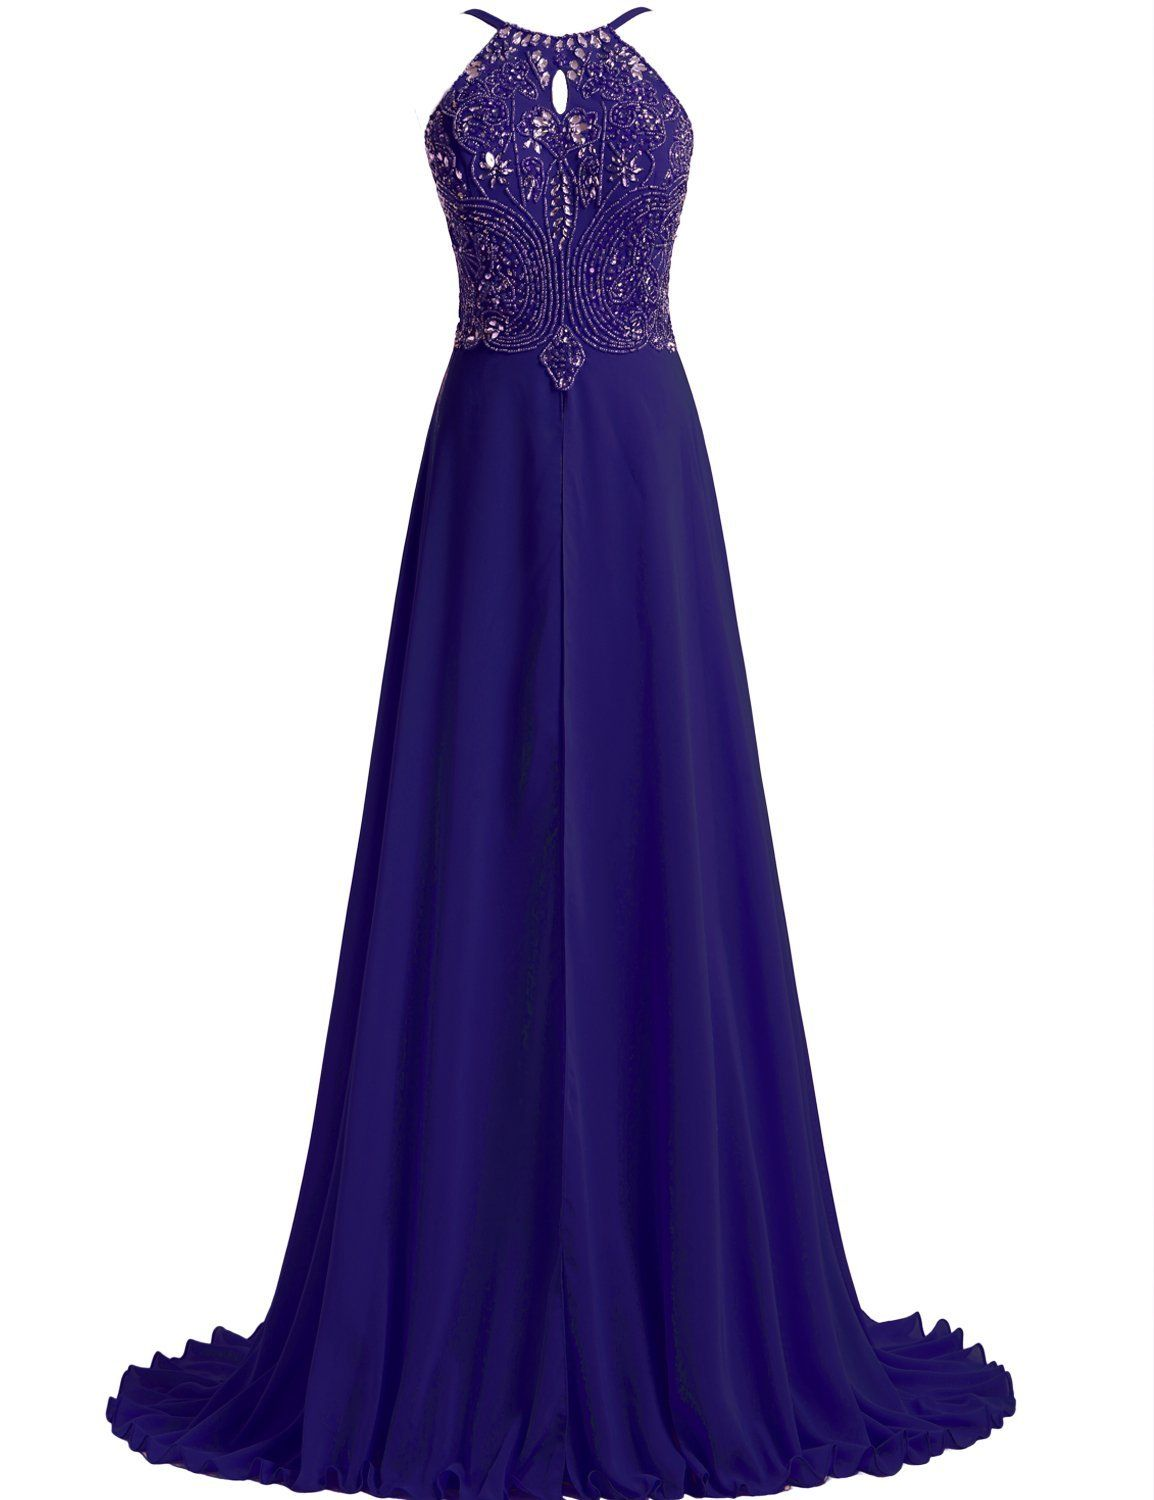 Lovingdress womenus prom dresses chiffon with straps beaded bodice